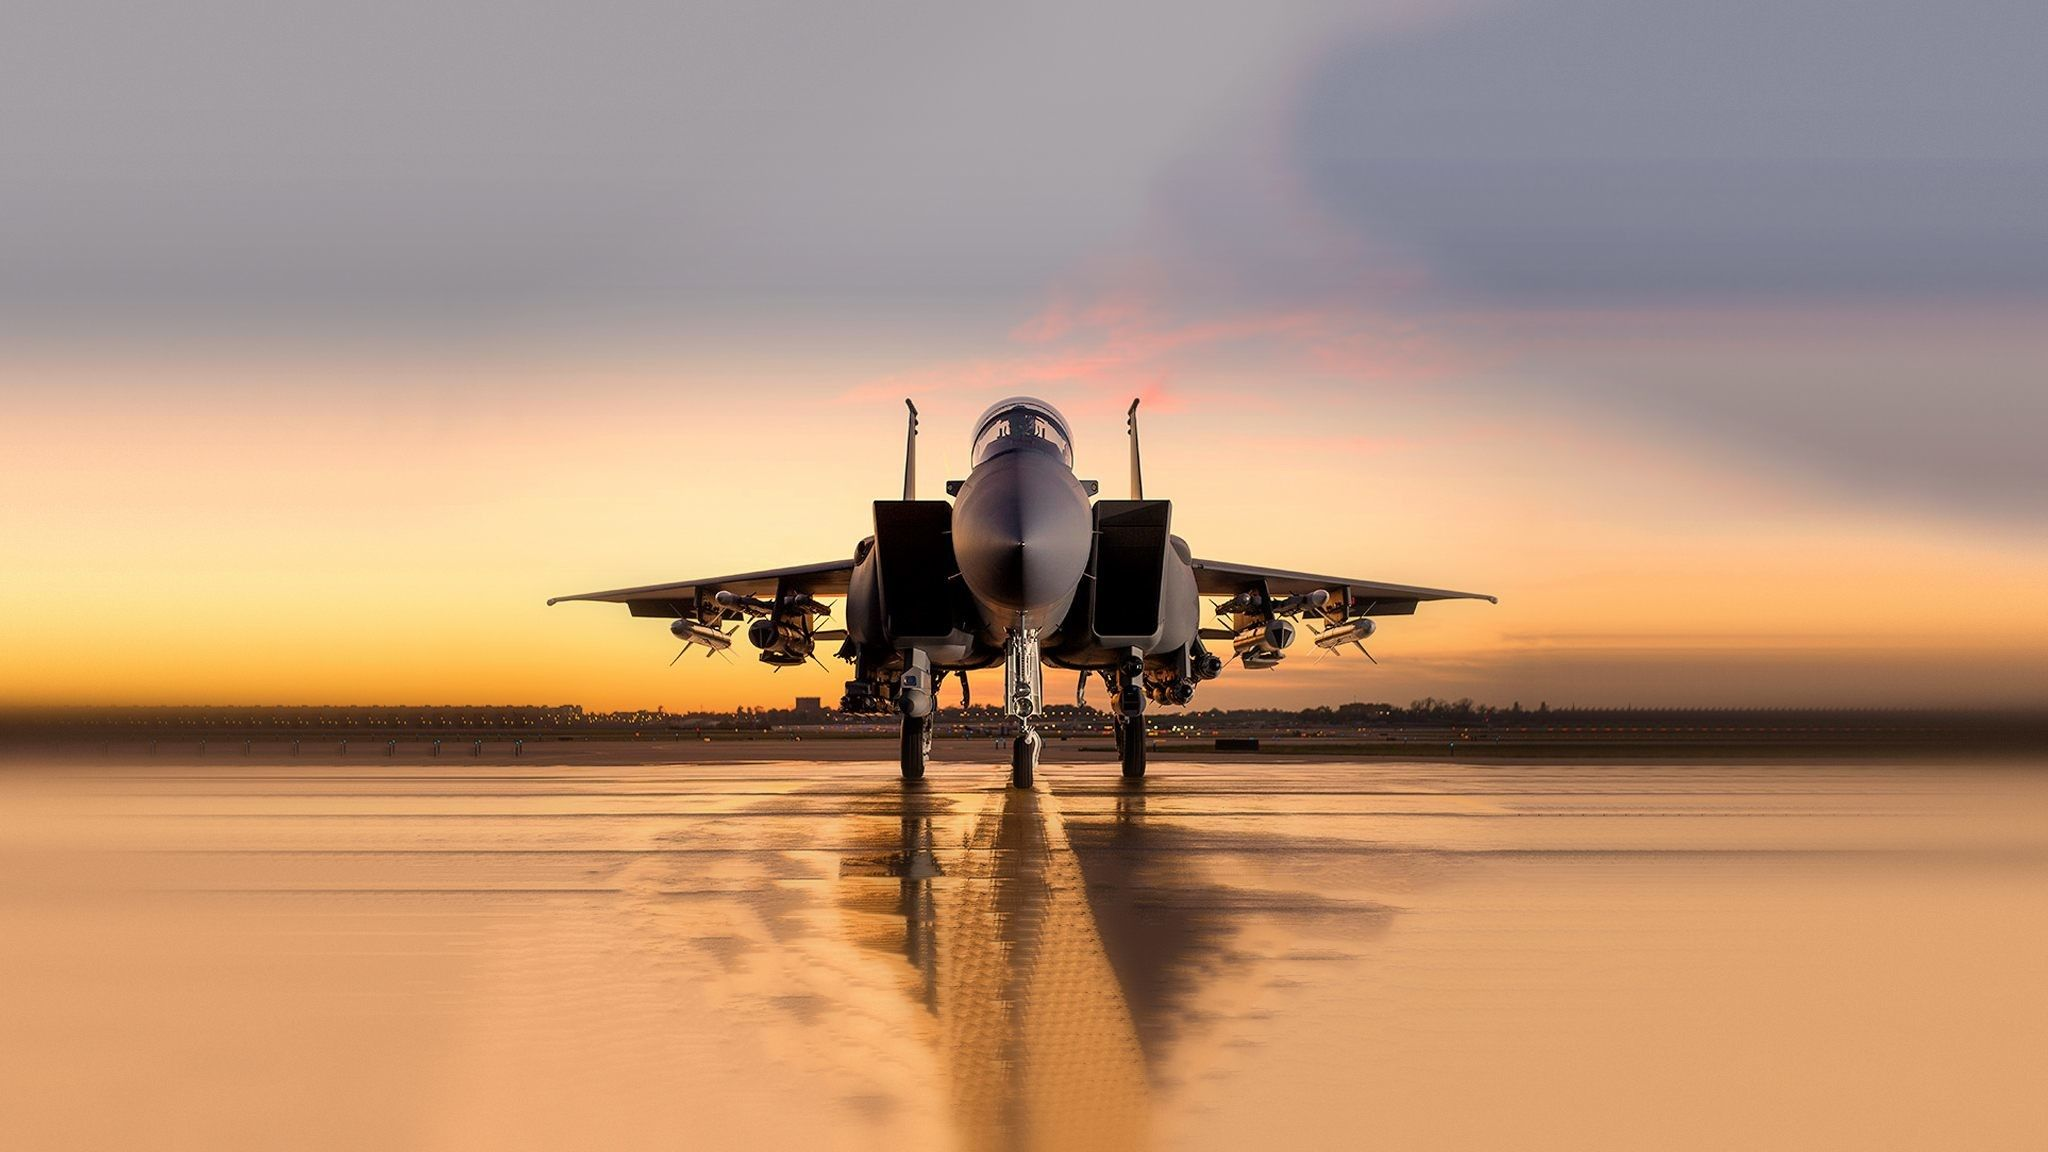 Fighter Aircraft Collection See All Wallpapers Wallpapers Background Military Fighter Jets Fighter Aircraft Fighter